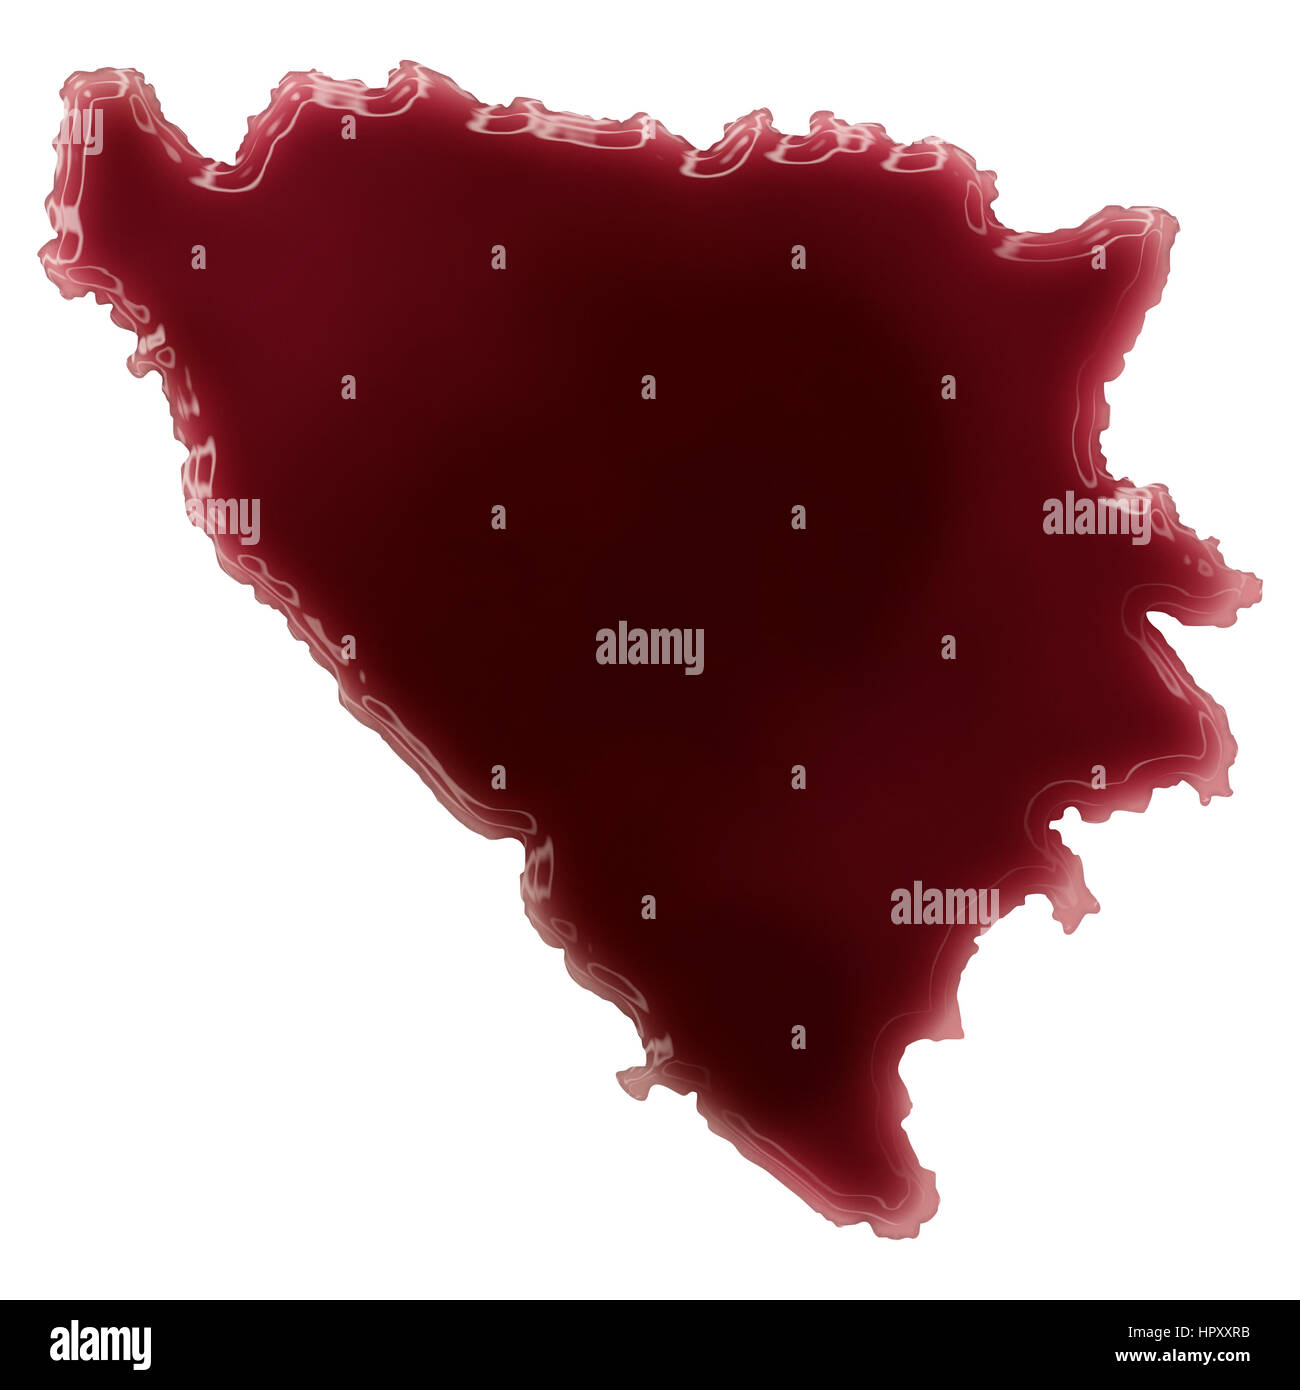 Pool of blood (or wine) that formed the shape of Bosnia and Herzegovina. (series) - Stock Image